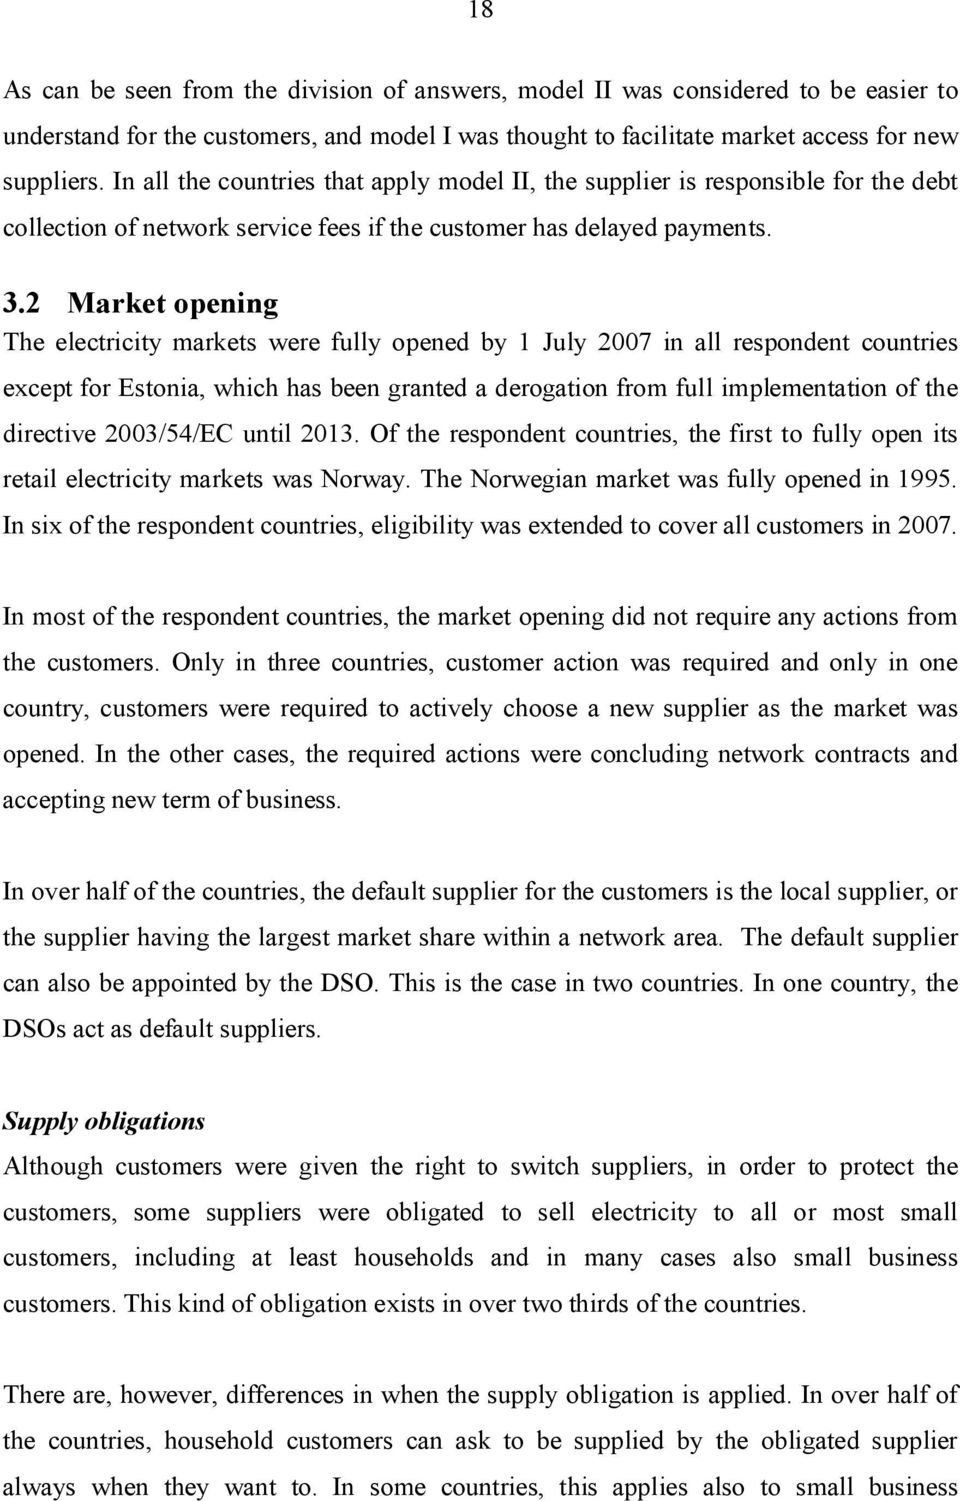 2 Market opening The electricity markets were fully opened by 1 July 2007 in all respondent countries except for Estonia, which has been granted a derogation from full implementation of the directive